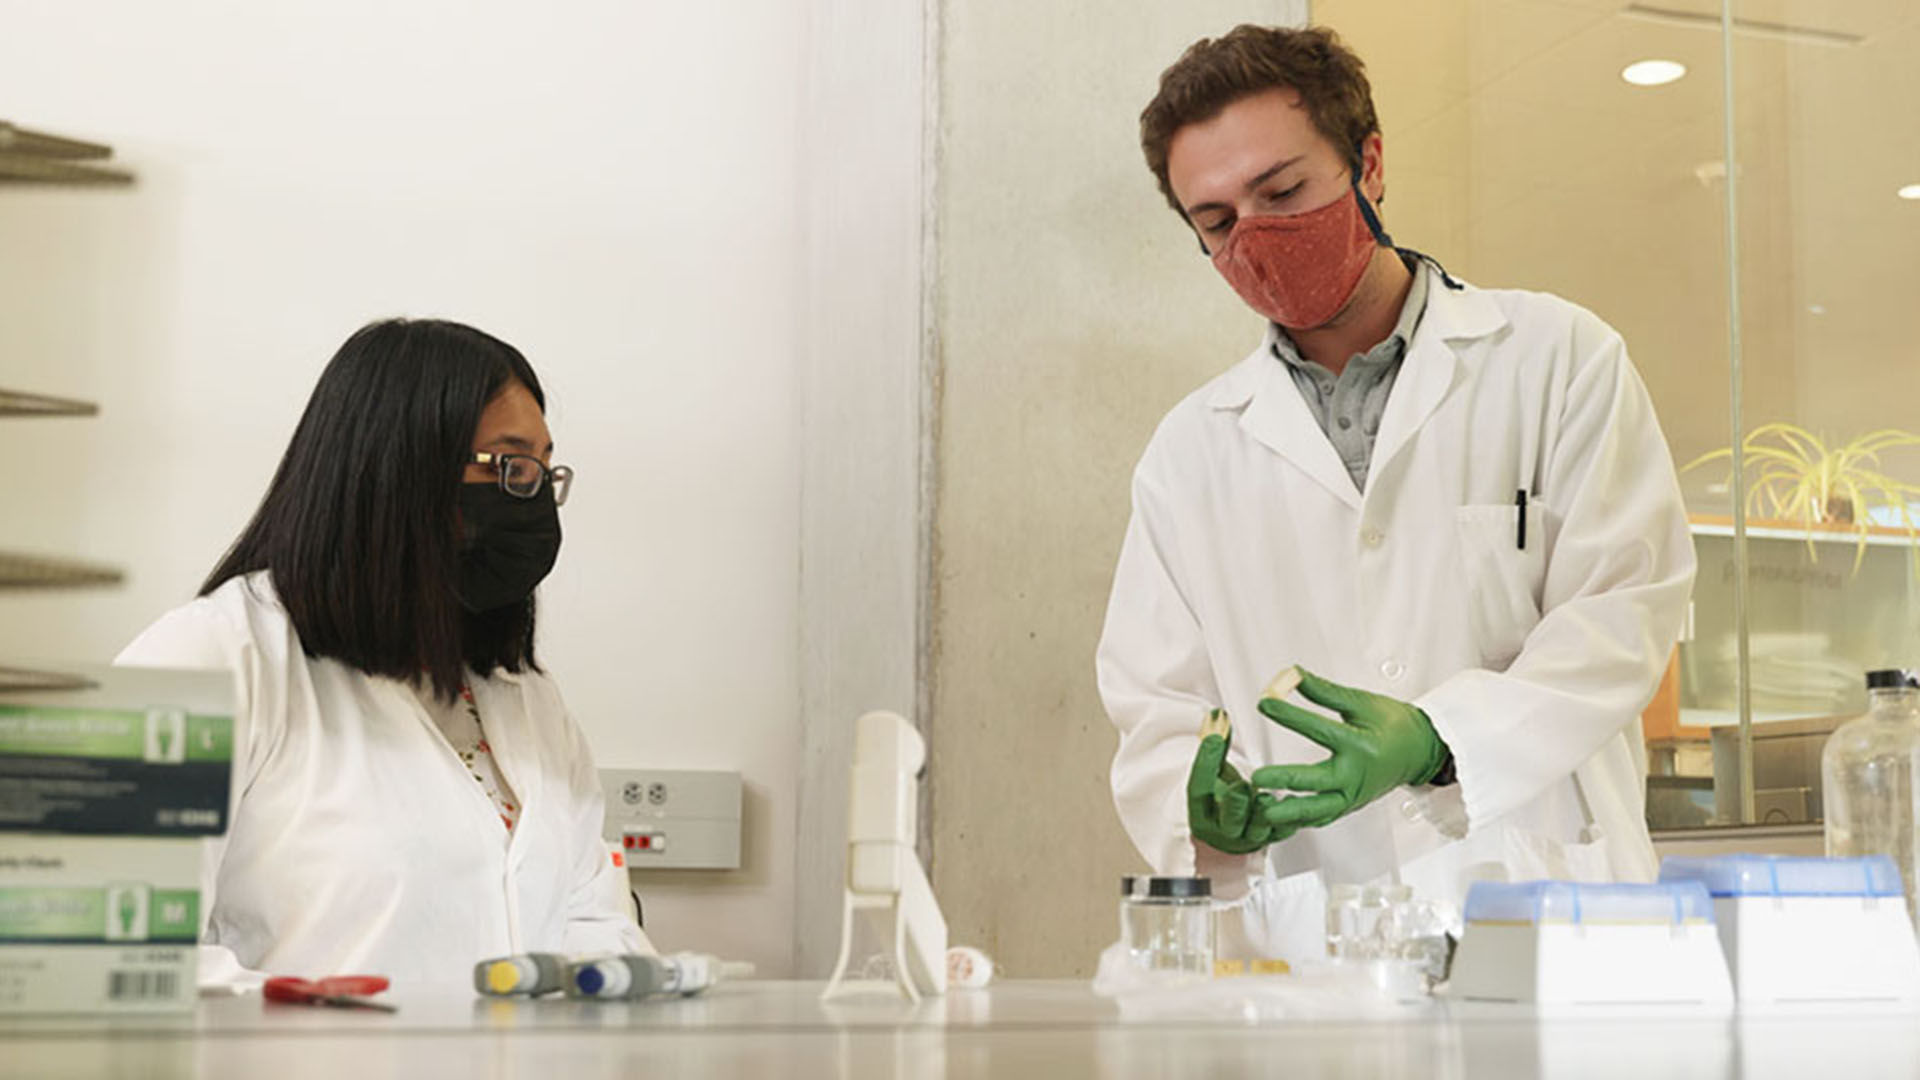 A man and woman wearing lab coats work in a science lab